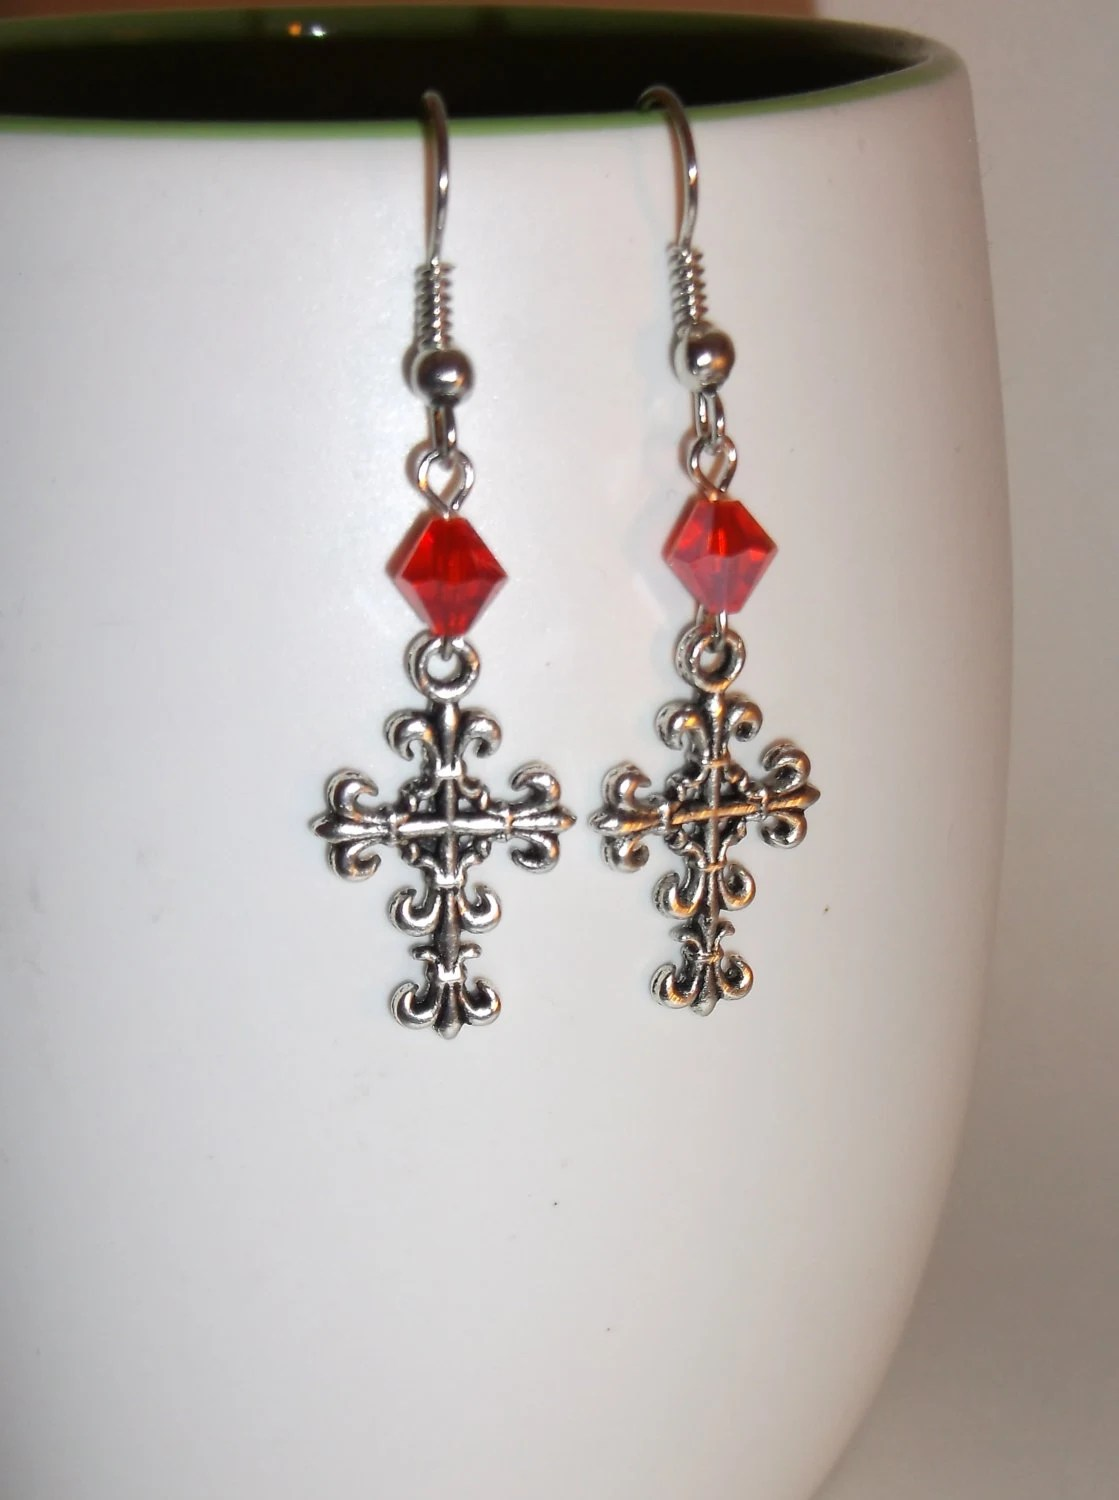 Cross Earrings, Red Bicone Bead, Gothic Style Dangles, Antique Silver, Fall Trends, Christmas Trends, Fleur de Lis - JustAddJewelry